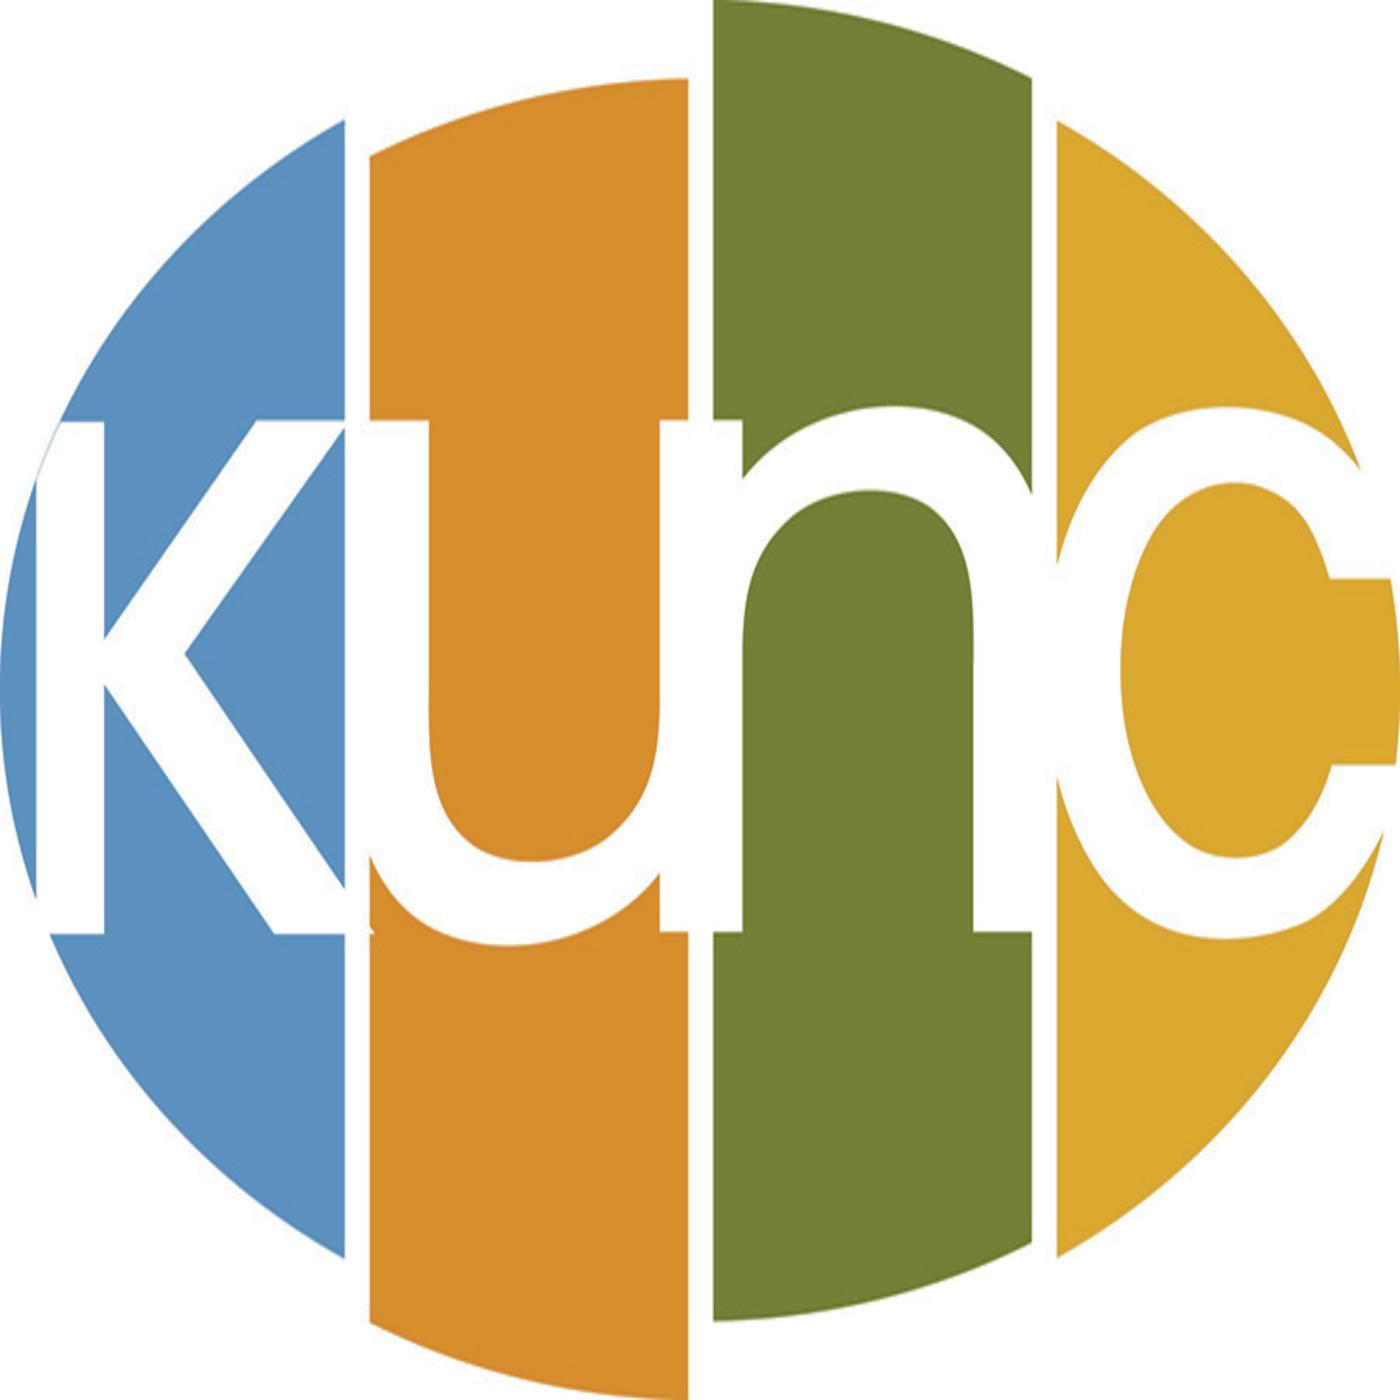 OFFICIAL USE KUNC LOGO_cropped